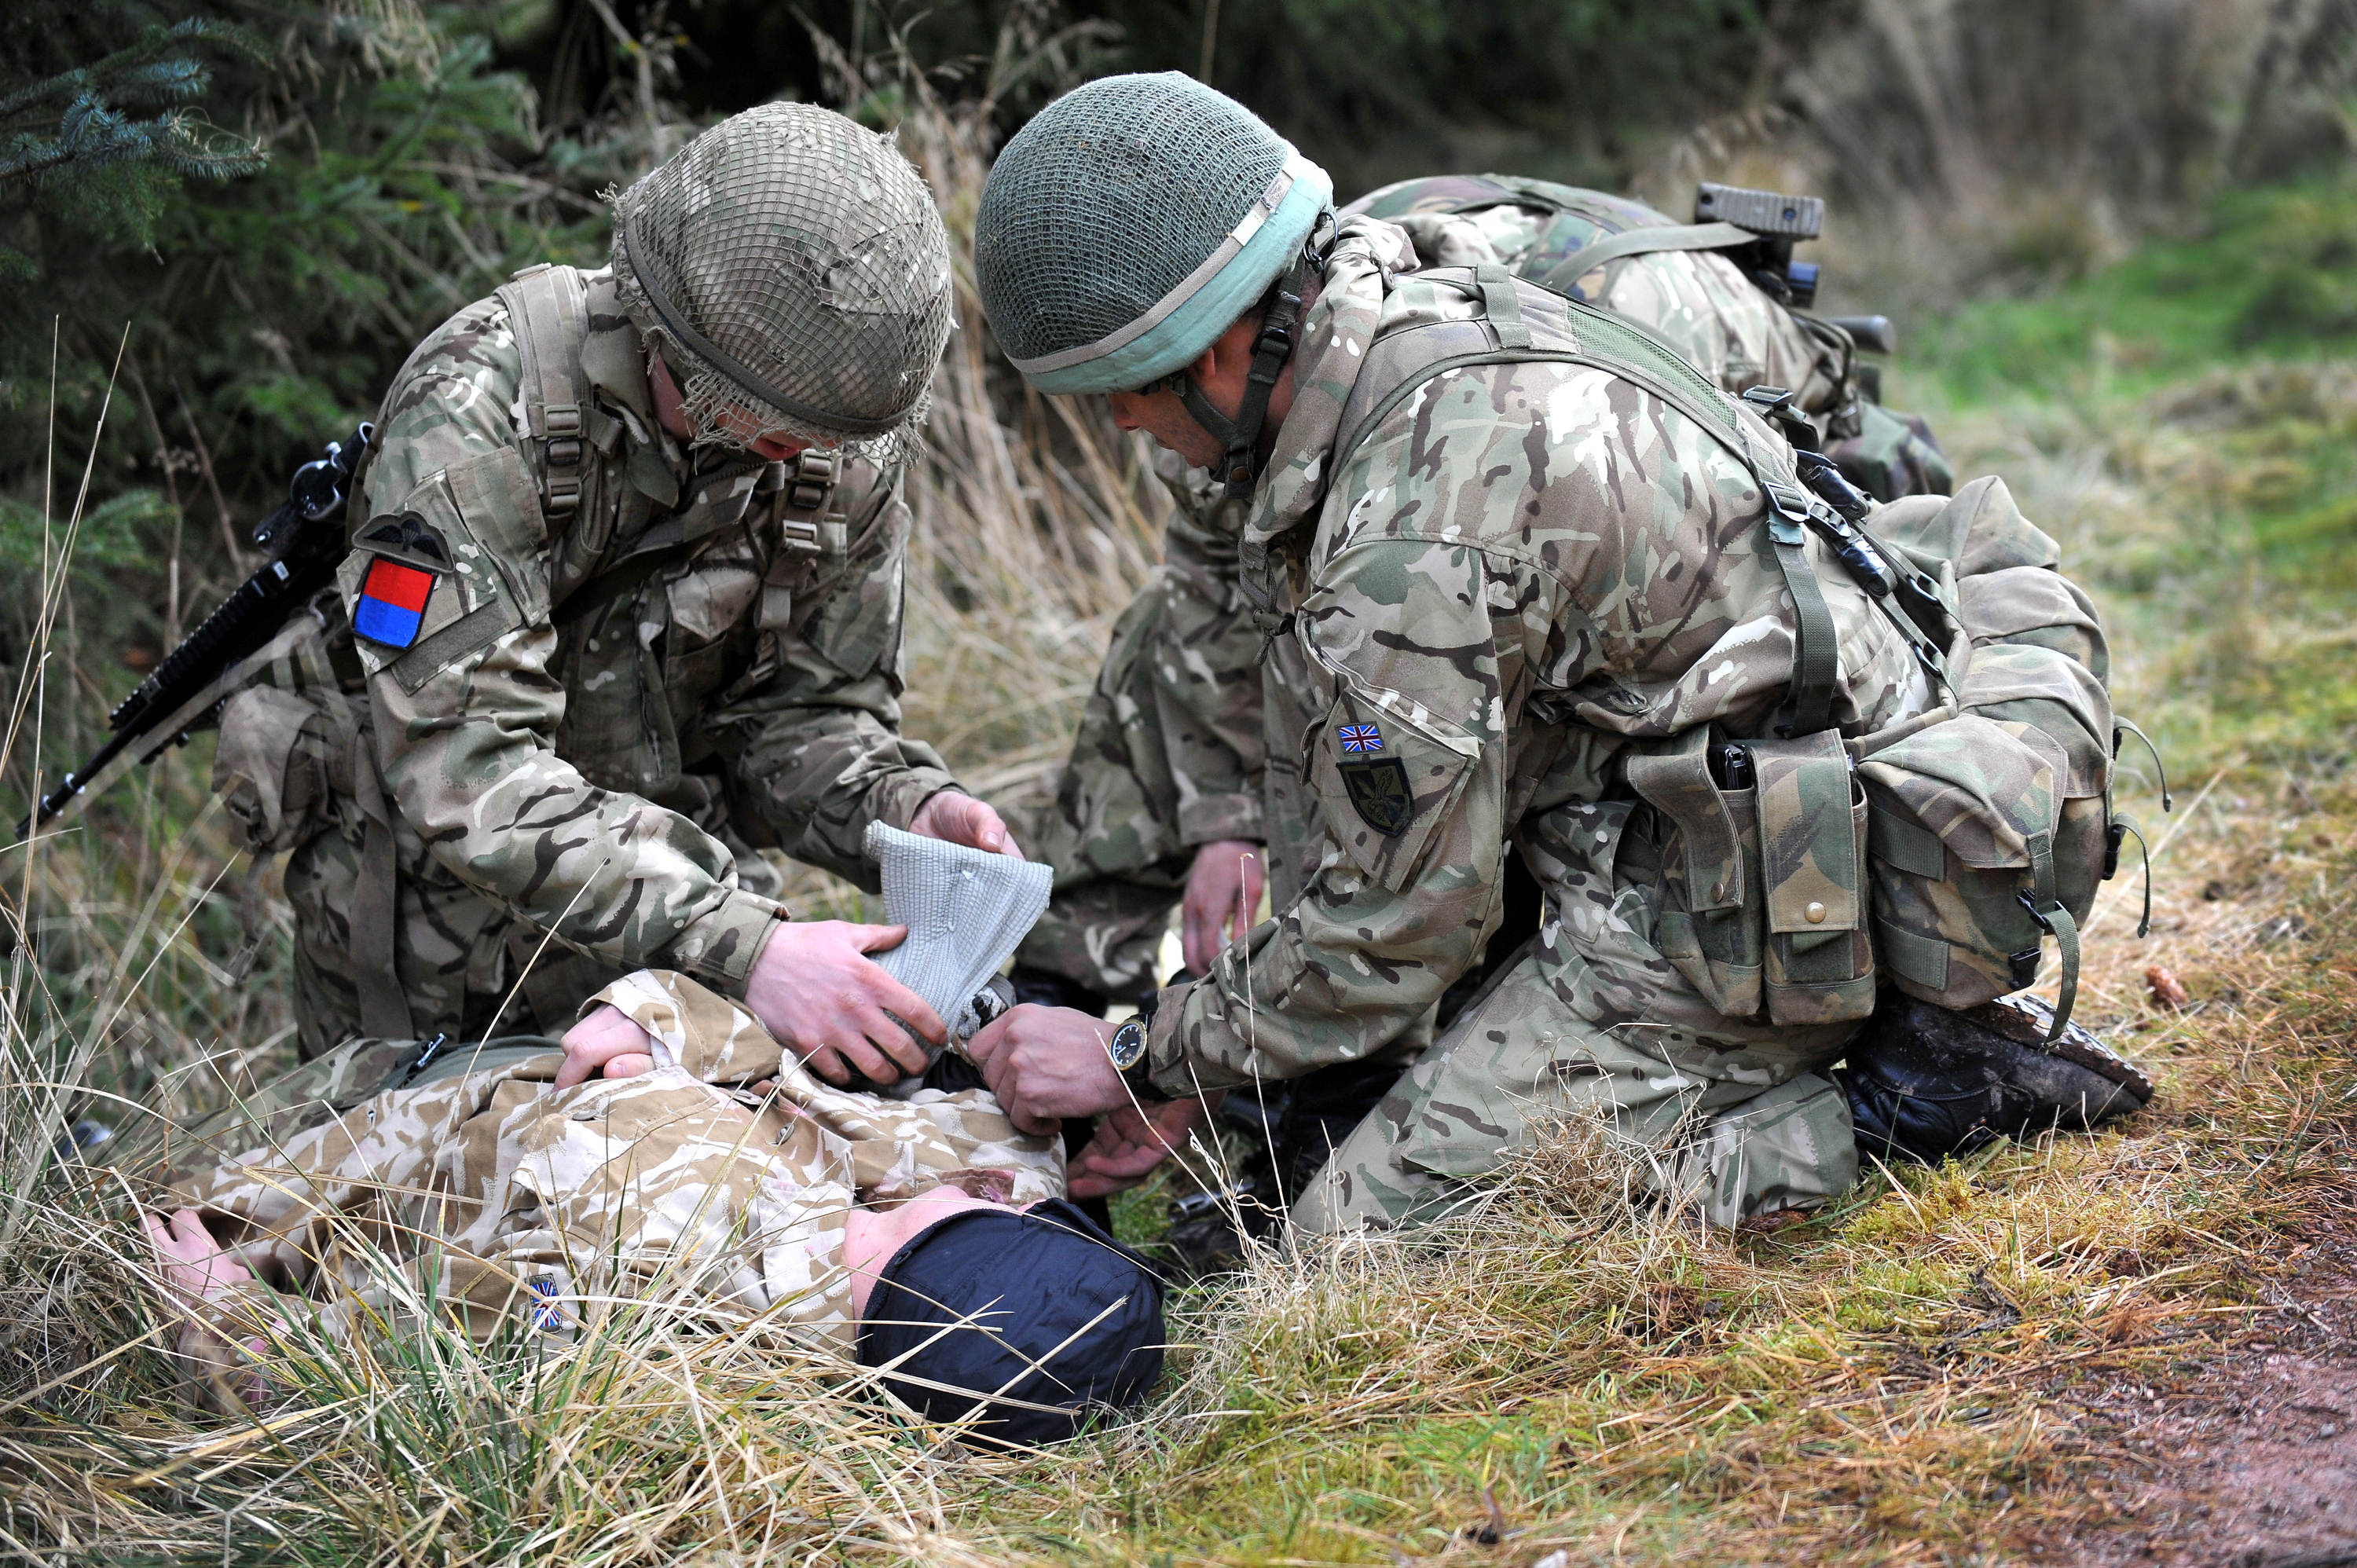 Soldiers_Giving_a_Casualty_First_Aid_MOD